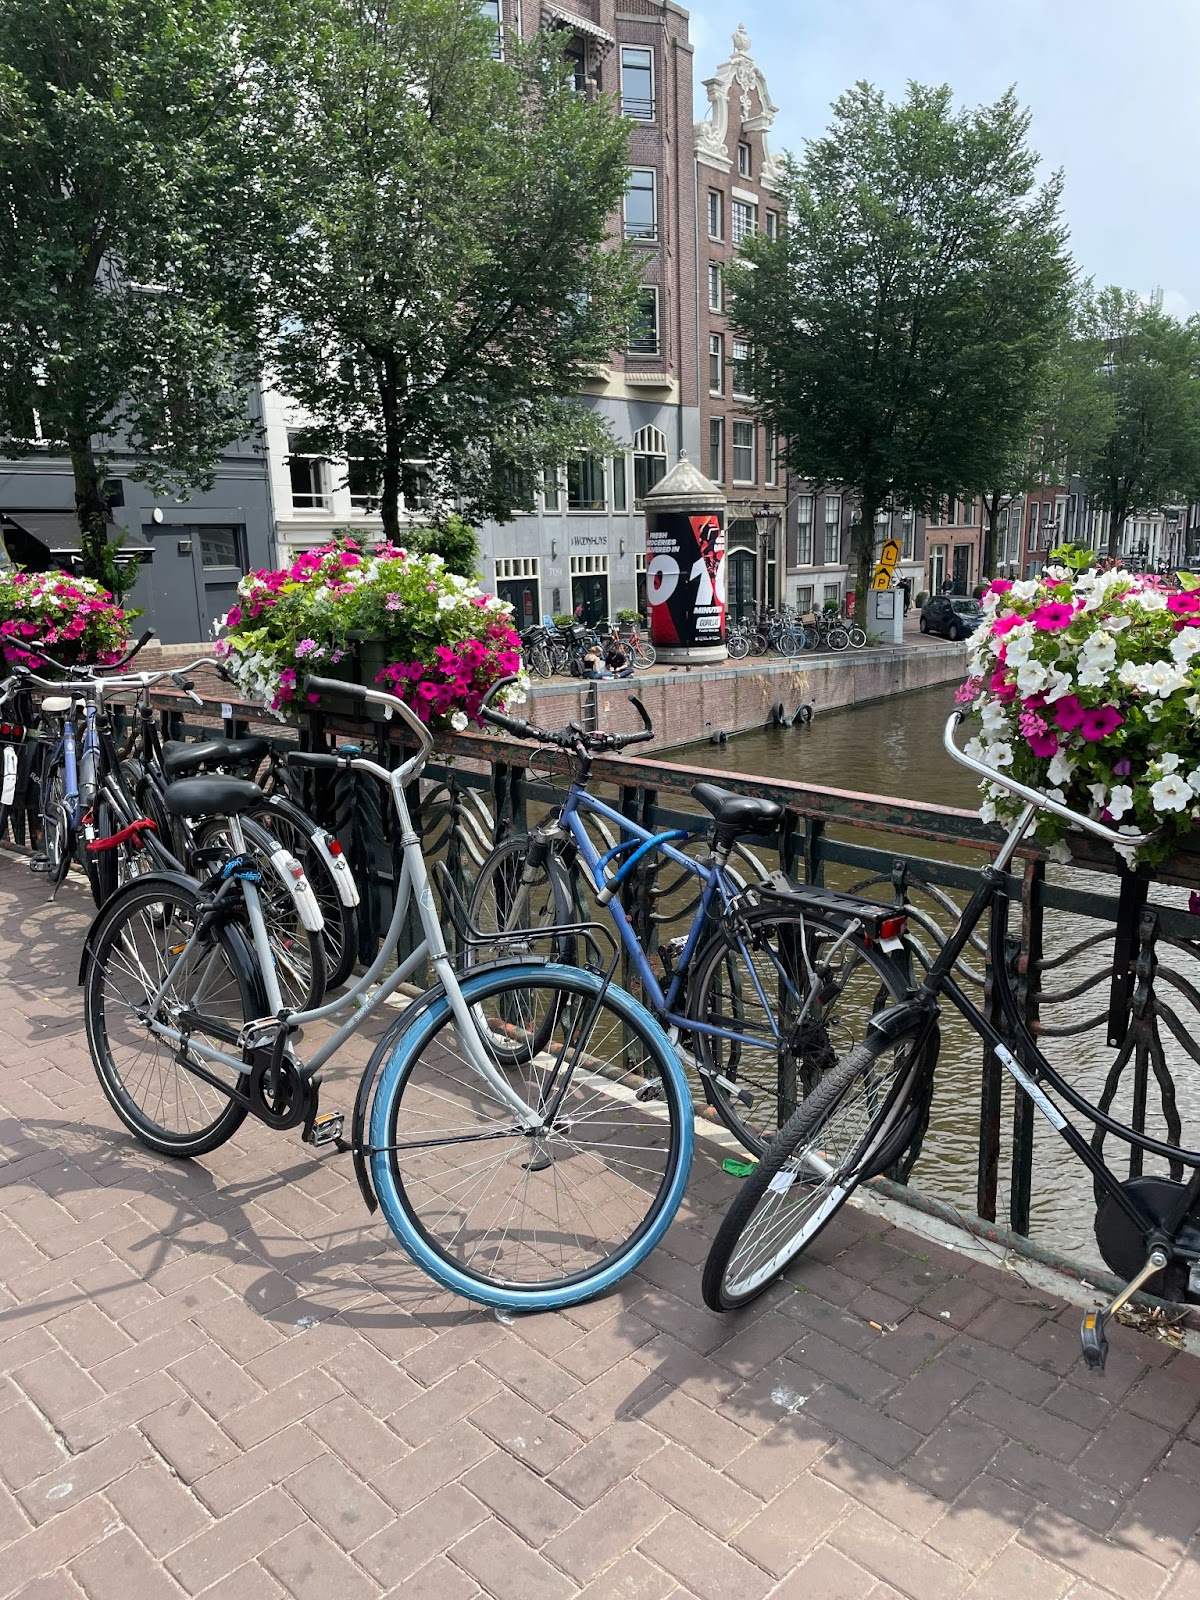 Bicycles line the streets of Amsterdam